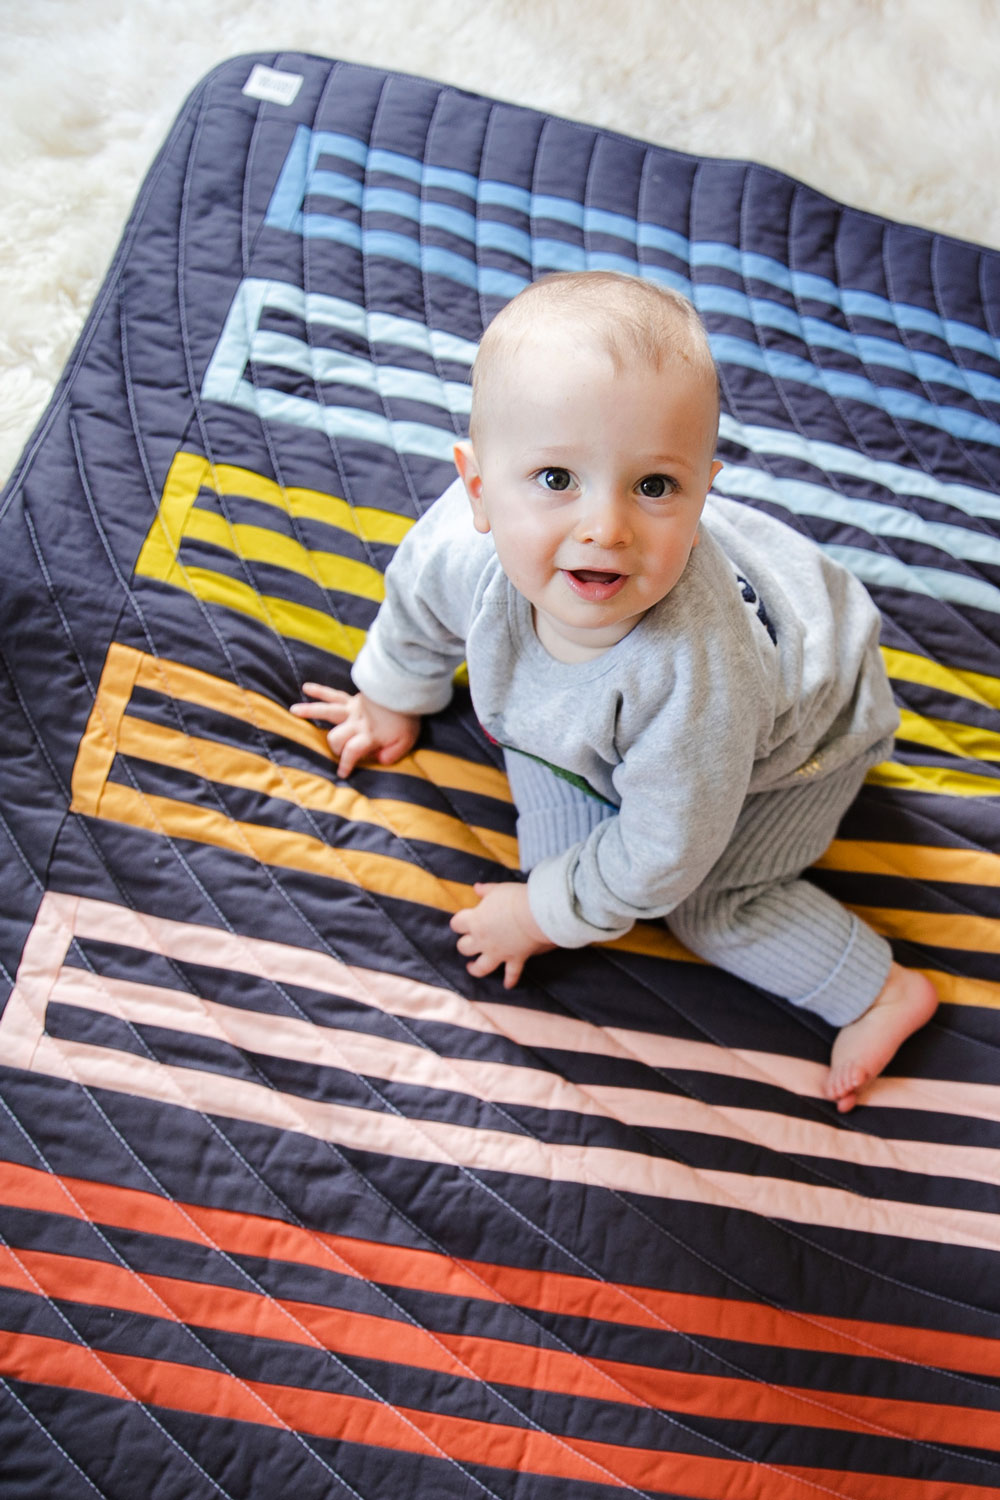 A small textiles company, based in Duluth, GA, makes rainbow baby quilts for a cause. These handmade baby quilts support local charities. suzyquilts.com #rainbowbaybquilt